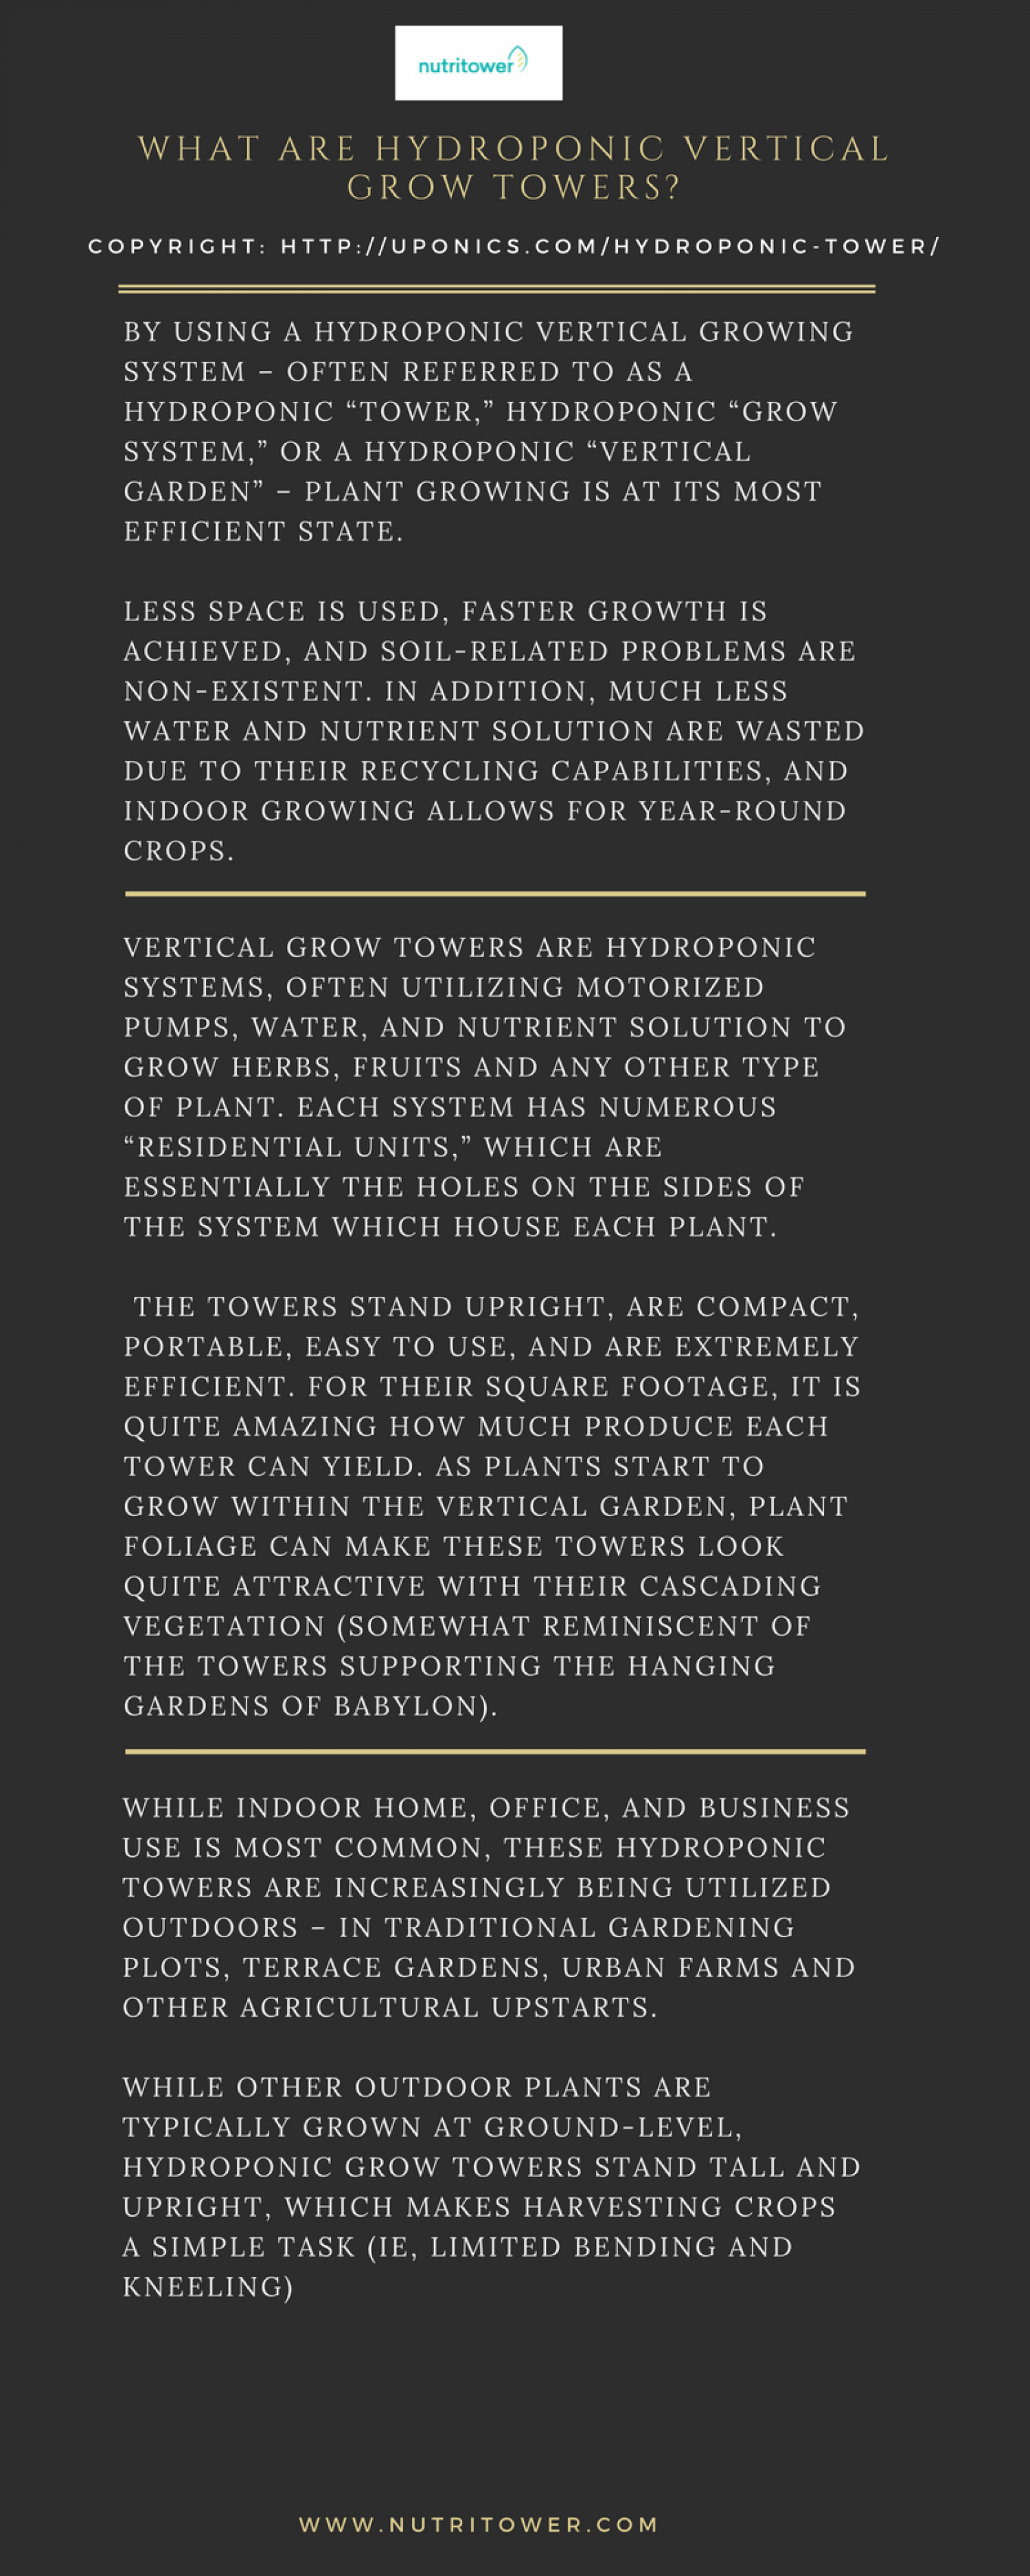 What are Hydroponic Vertical Grow Towers? Infographic